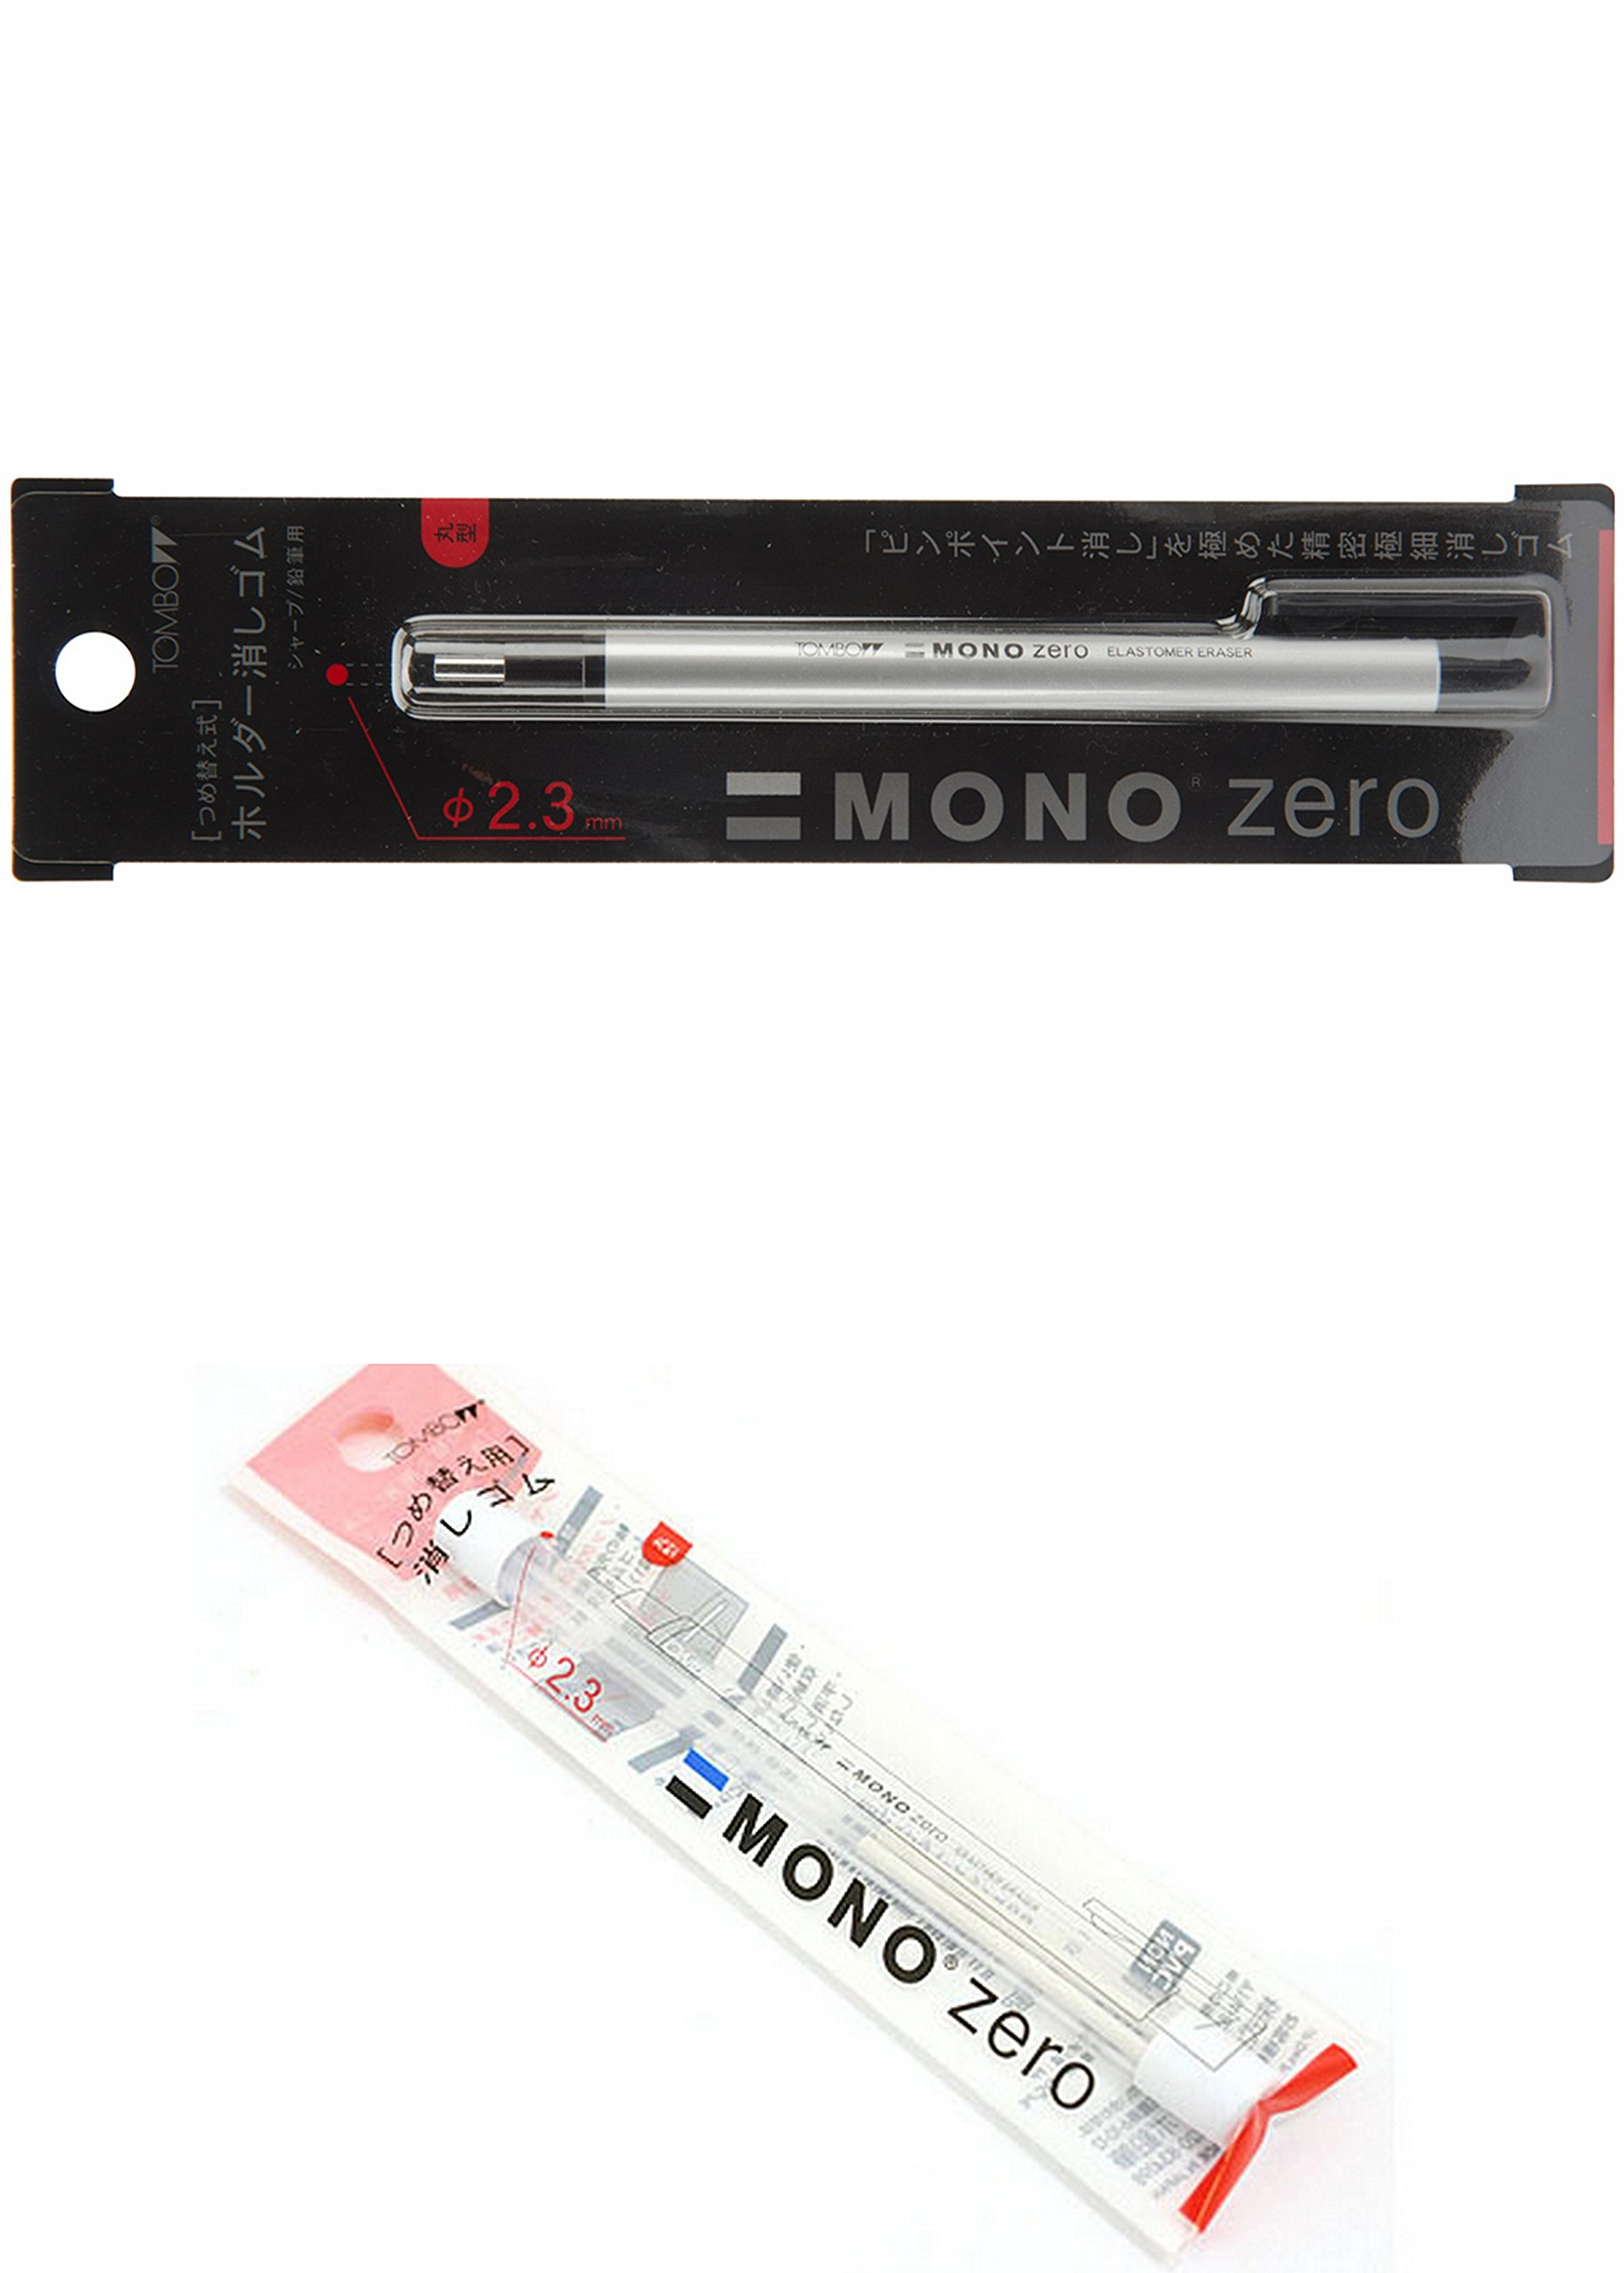 Tombow MONO Zero Eraser, Round Tip, Retractable, Silver Barrel (Eraser with an extra refill (57305 and 57307)) by Tombow Mono (Image #1)